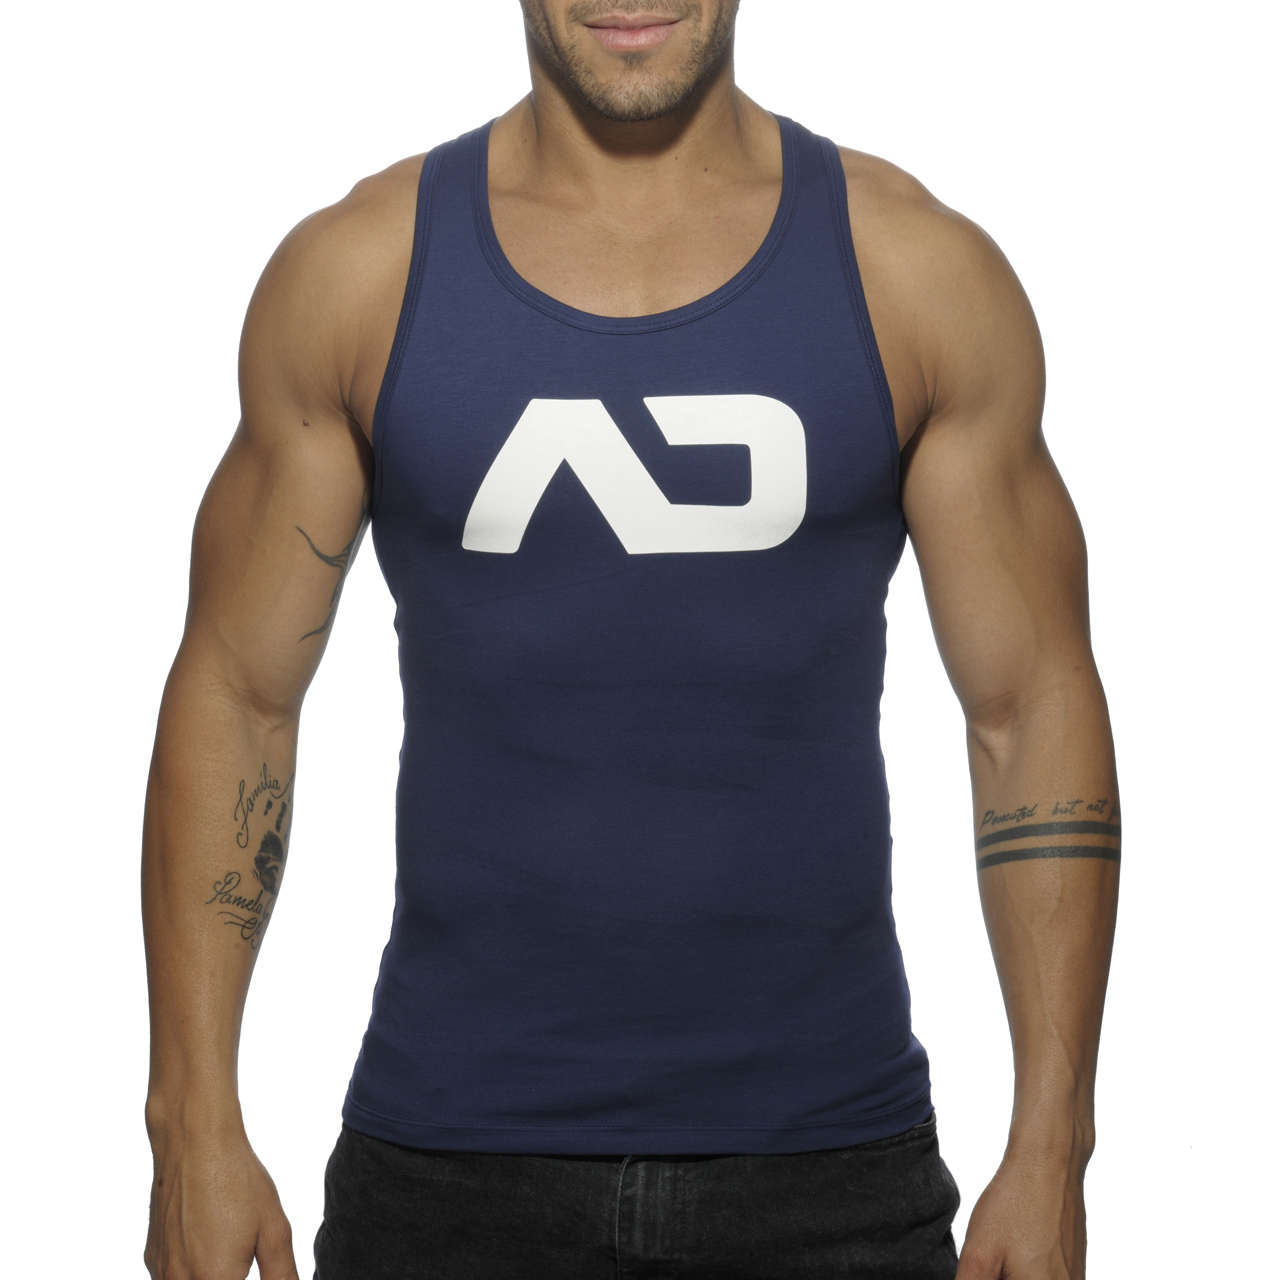 BASIC AD TANK TOP NAVY 09